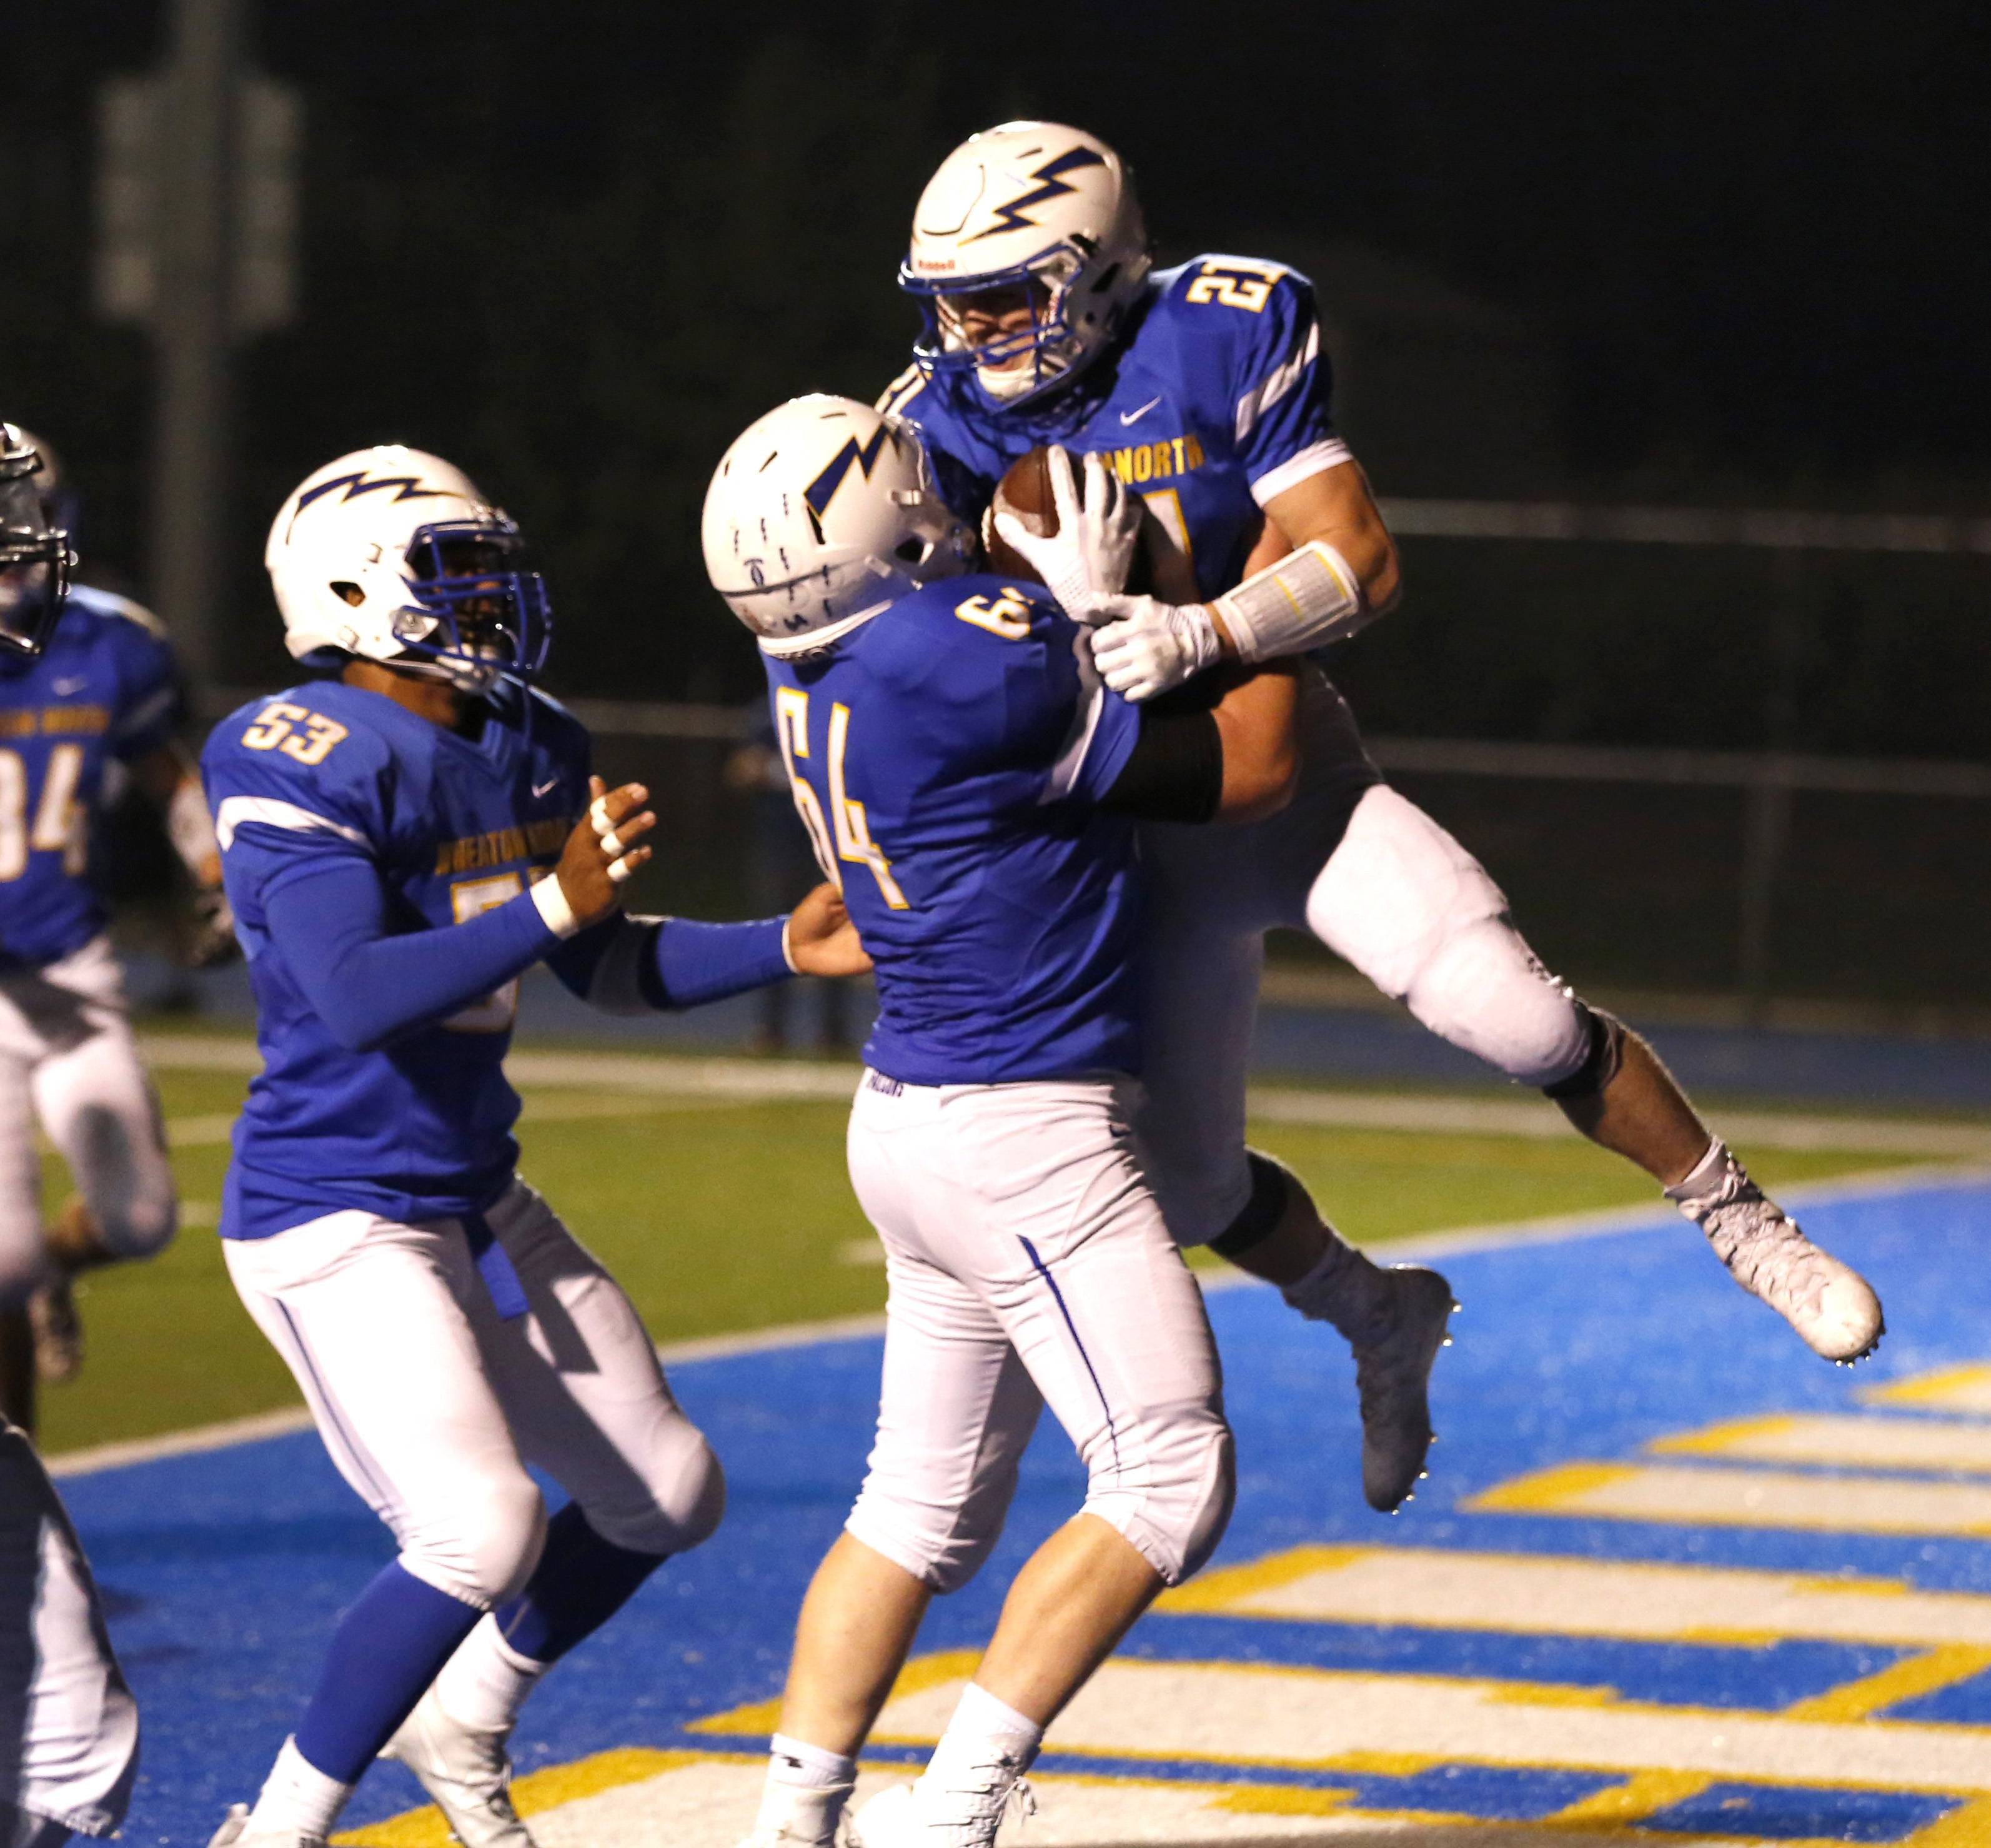 Images: Wheaton North vs. Waubonsie Valley football